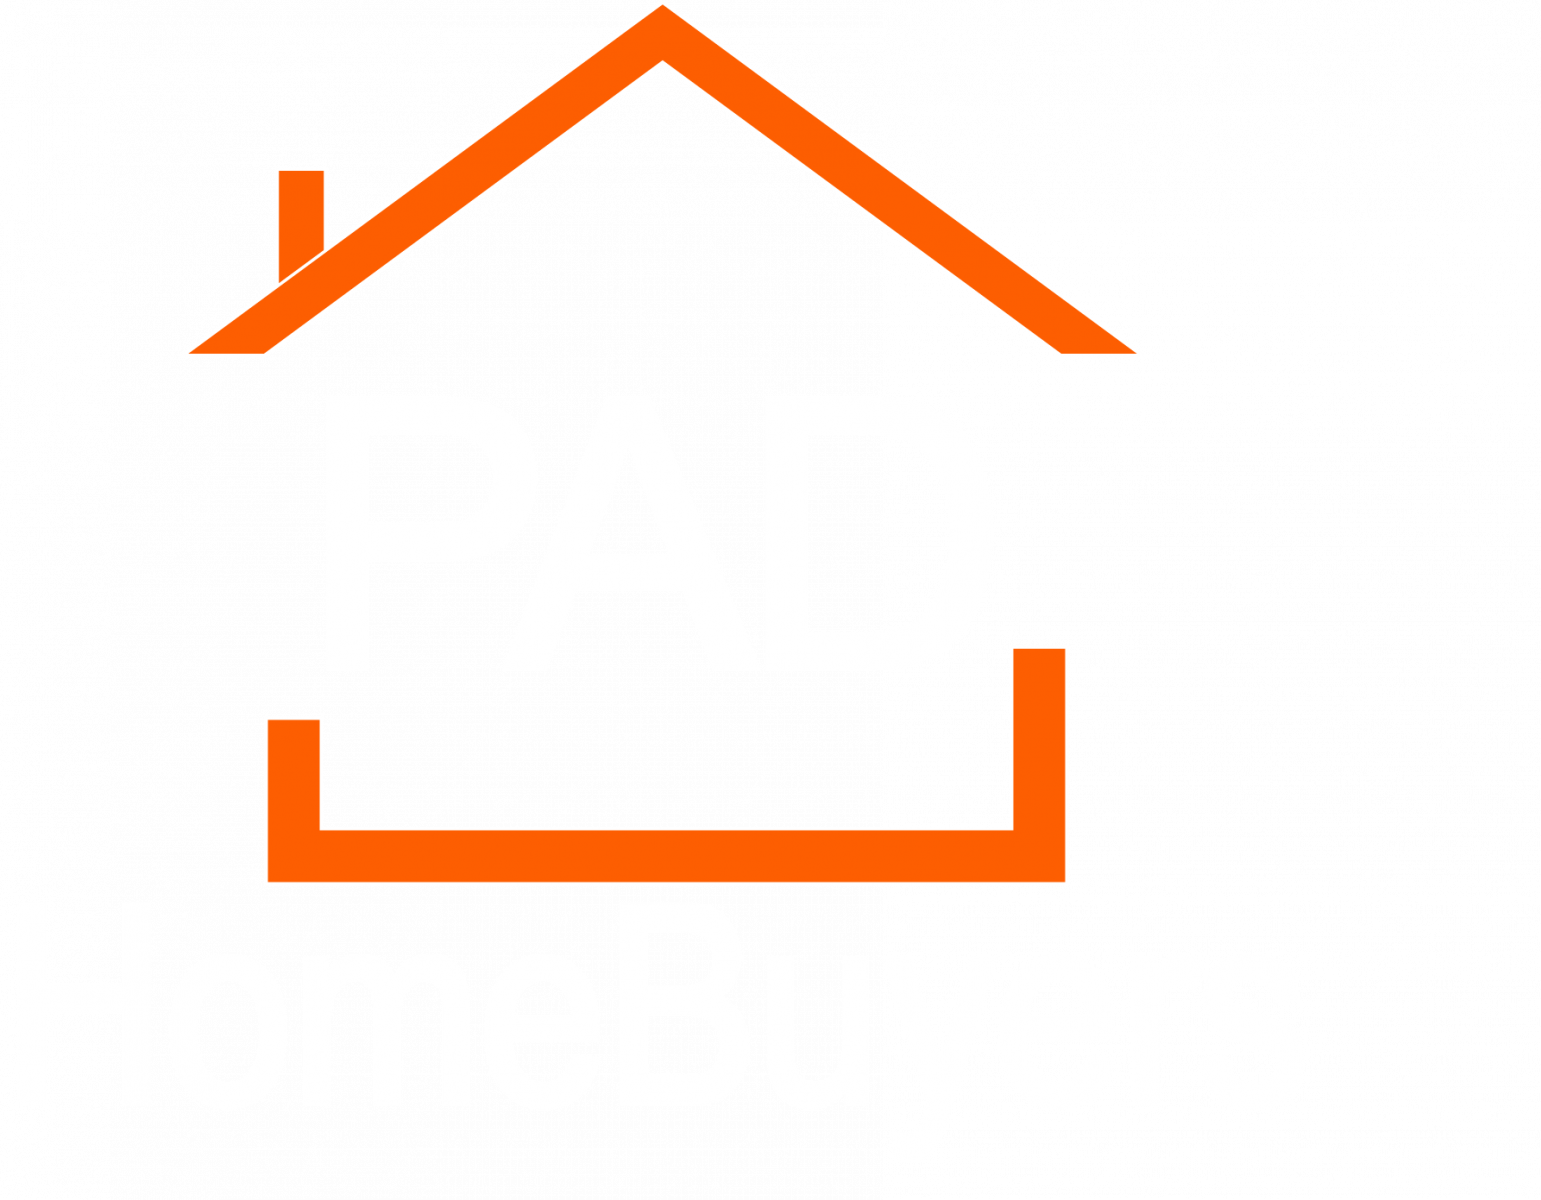 We Buy Houses Milwaukee logo